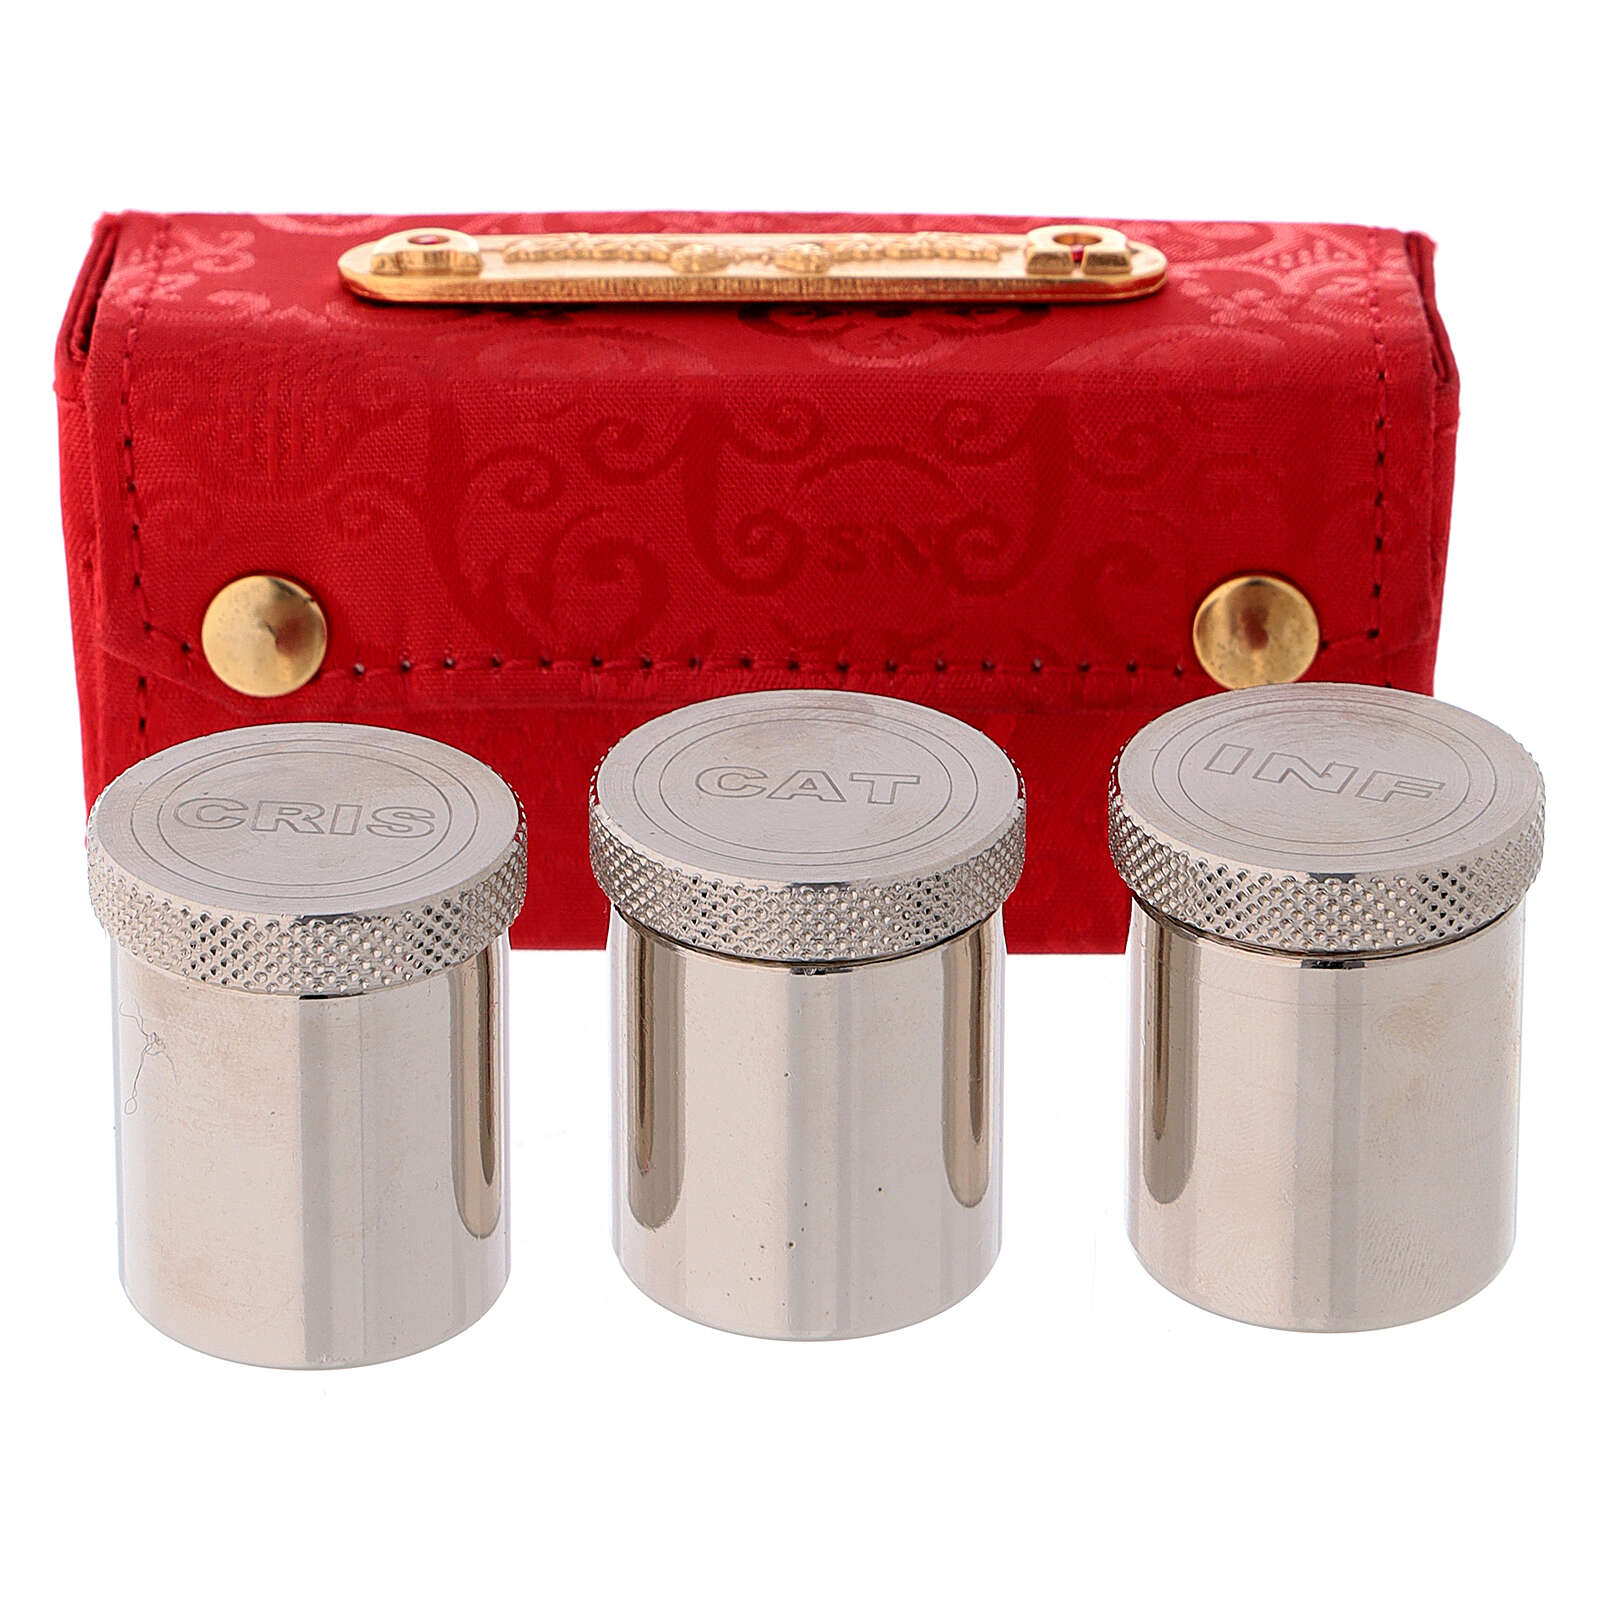 Holy Oils case in red jacquard fabric with three jars 3